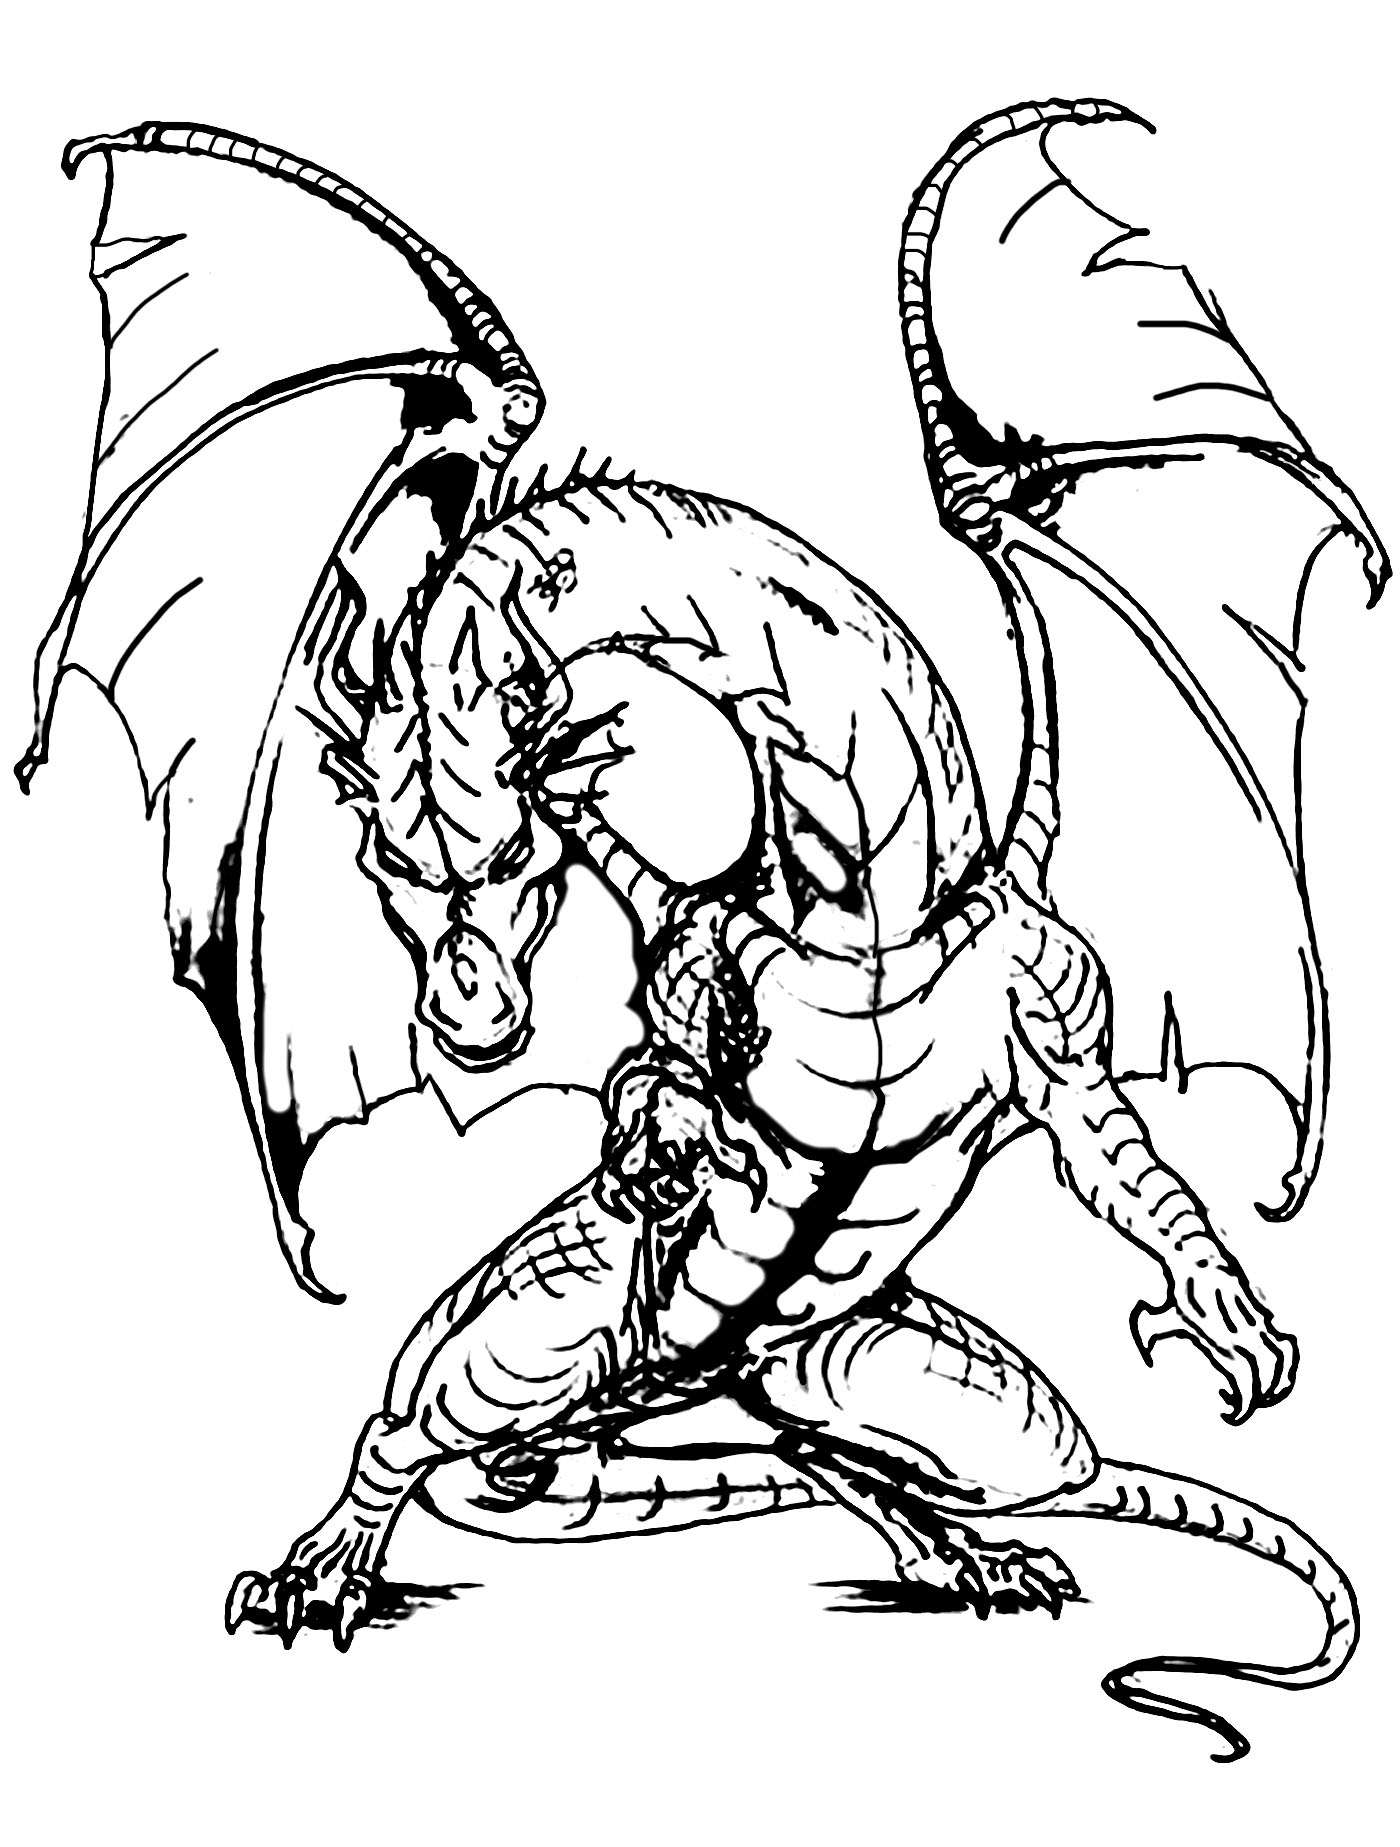 dragon colouring pictures dragon coloring pages printable activity shelter dragon colouring pictures